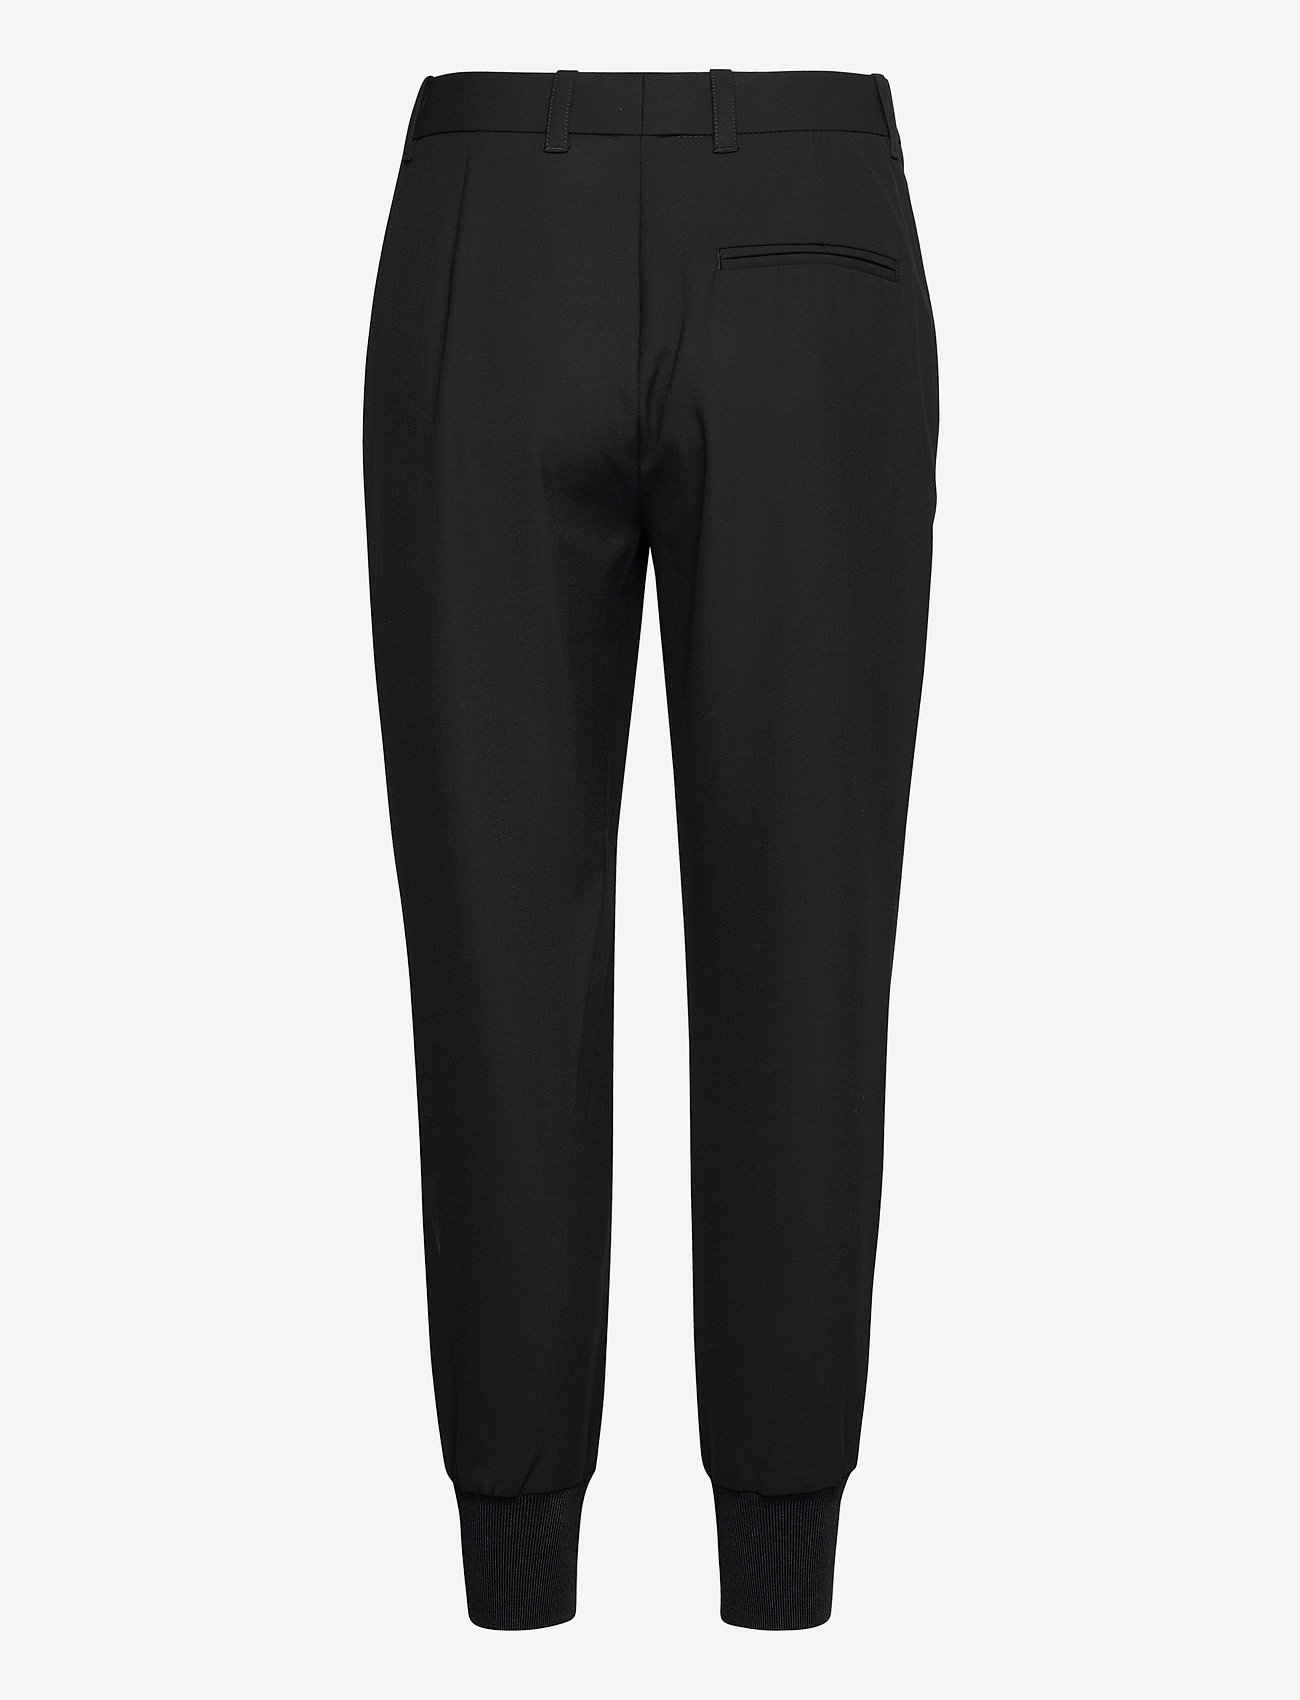 3.1 Phillip Lim - JOGGER W FRONT POCKET DETAIL - tøj - black - 1